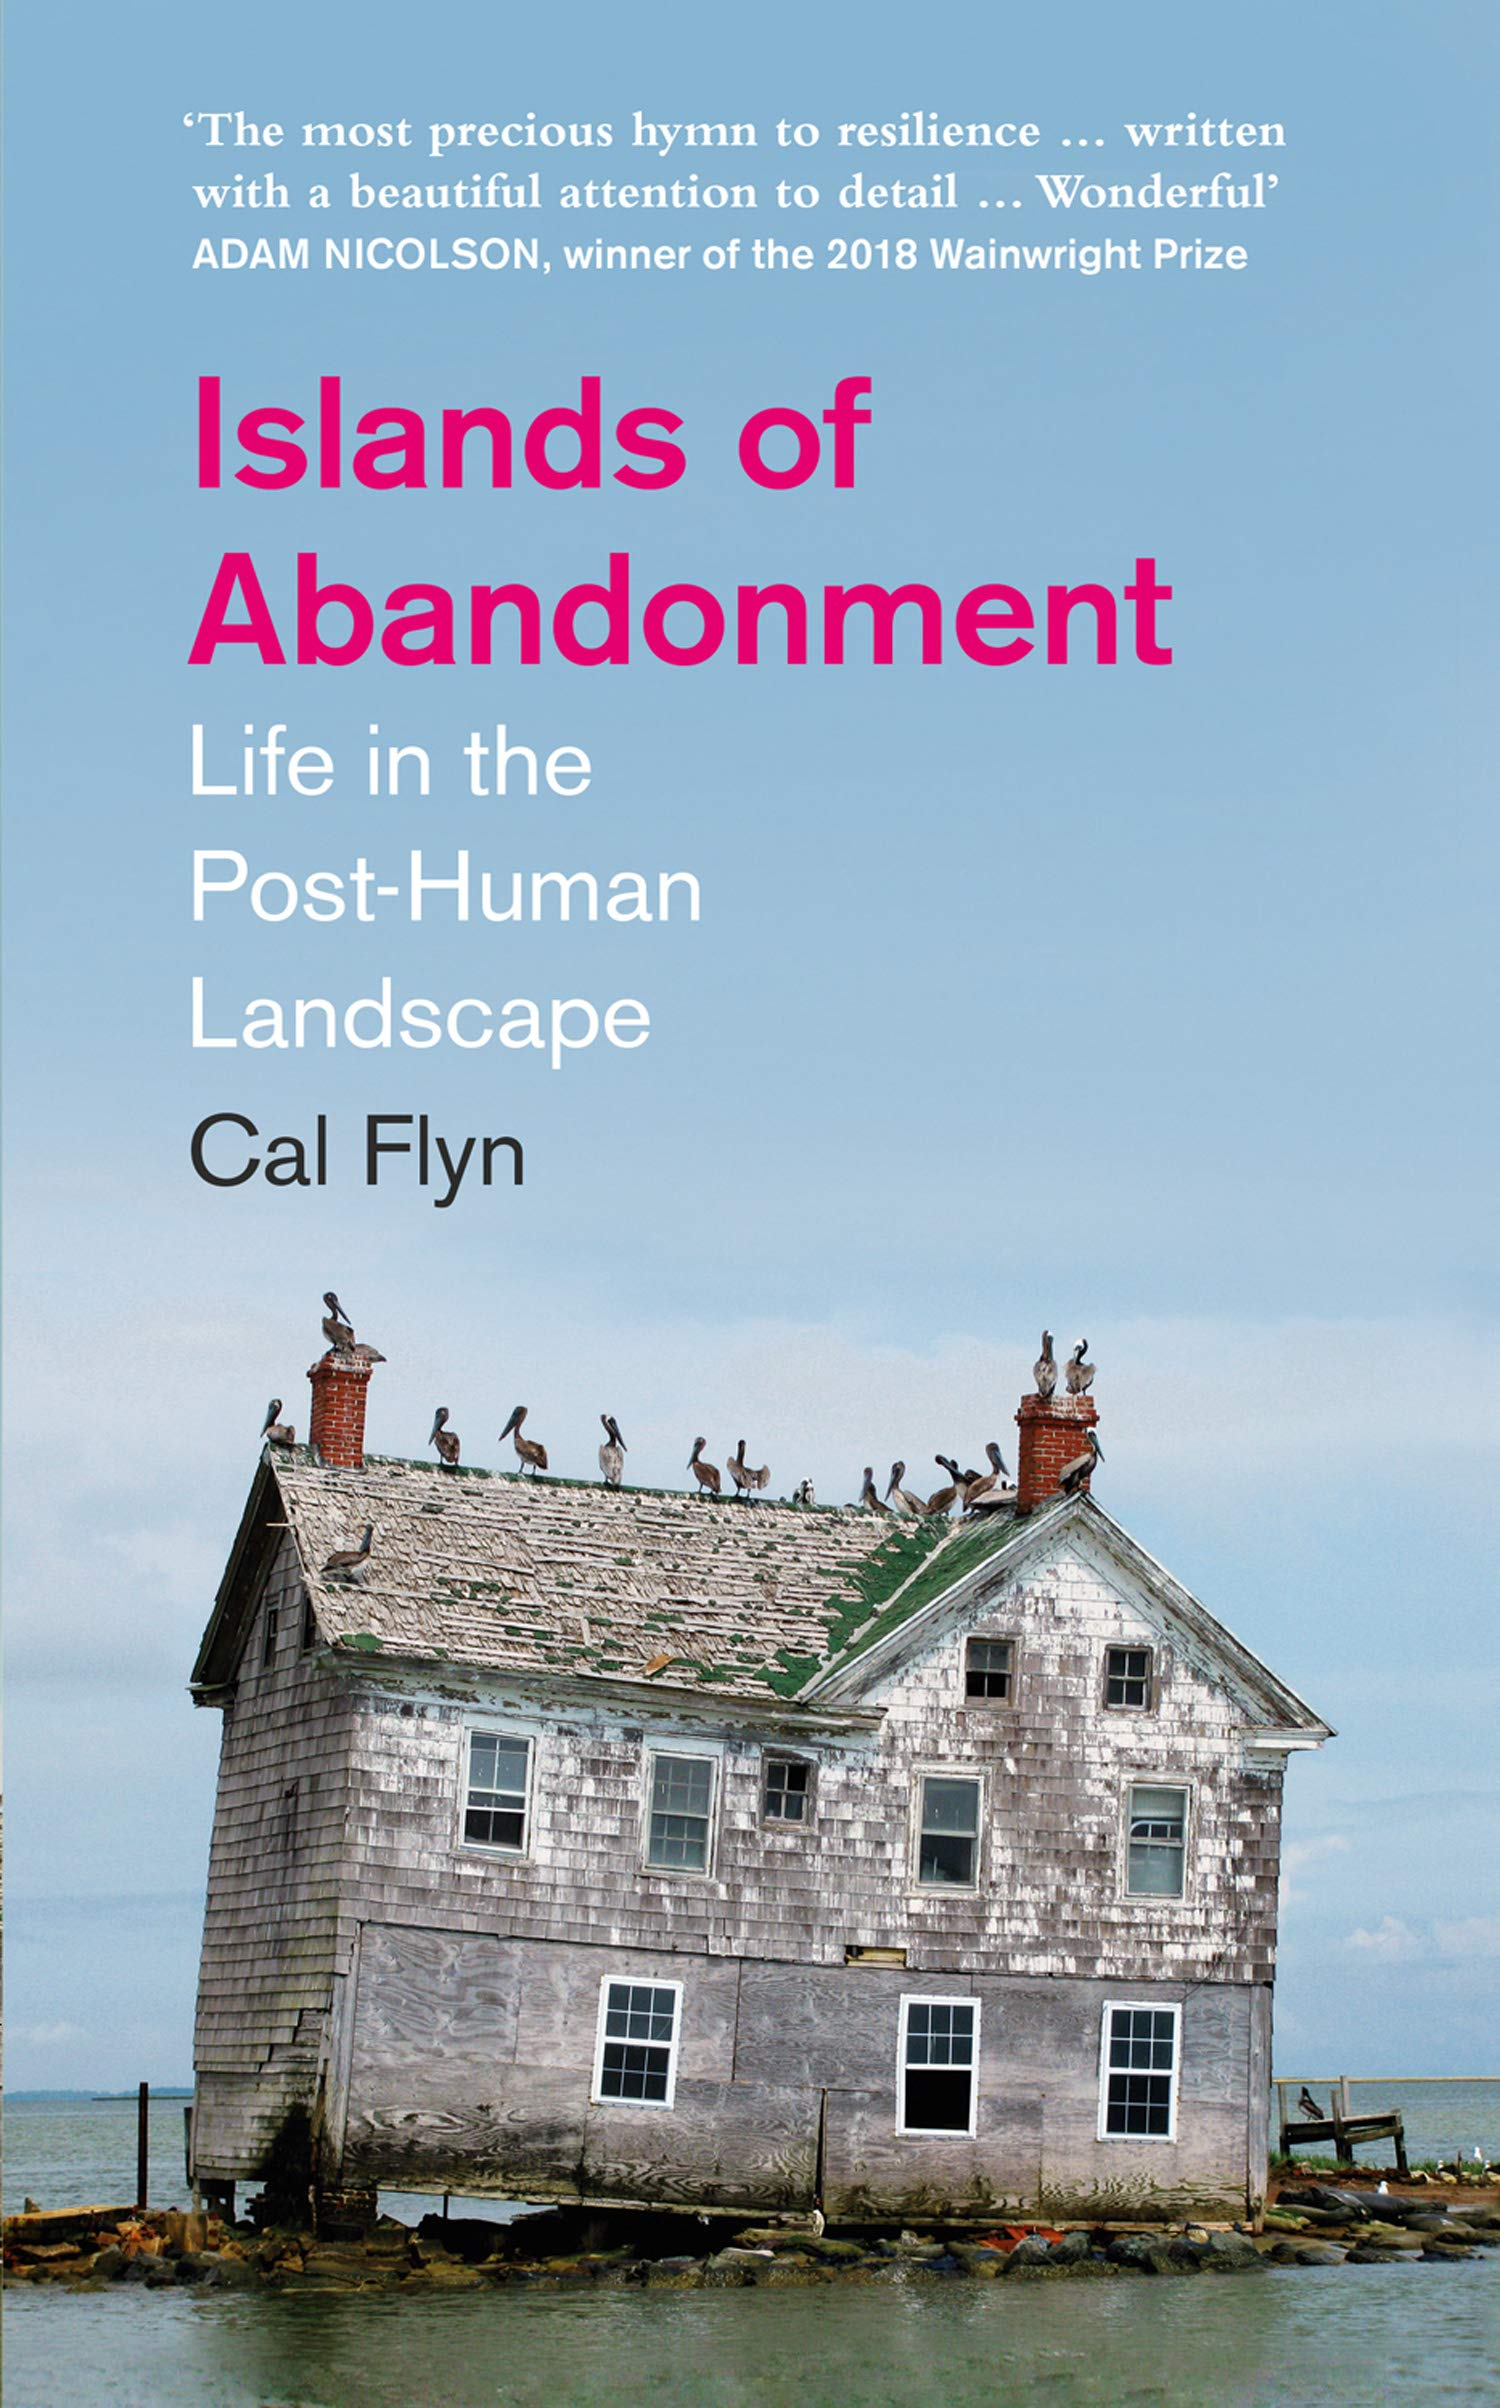 Amazon.com: Islands of Abandonment: Life in the Post-Human Landscape:  9780008329761: Flyn, Cal: Books